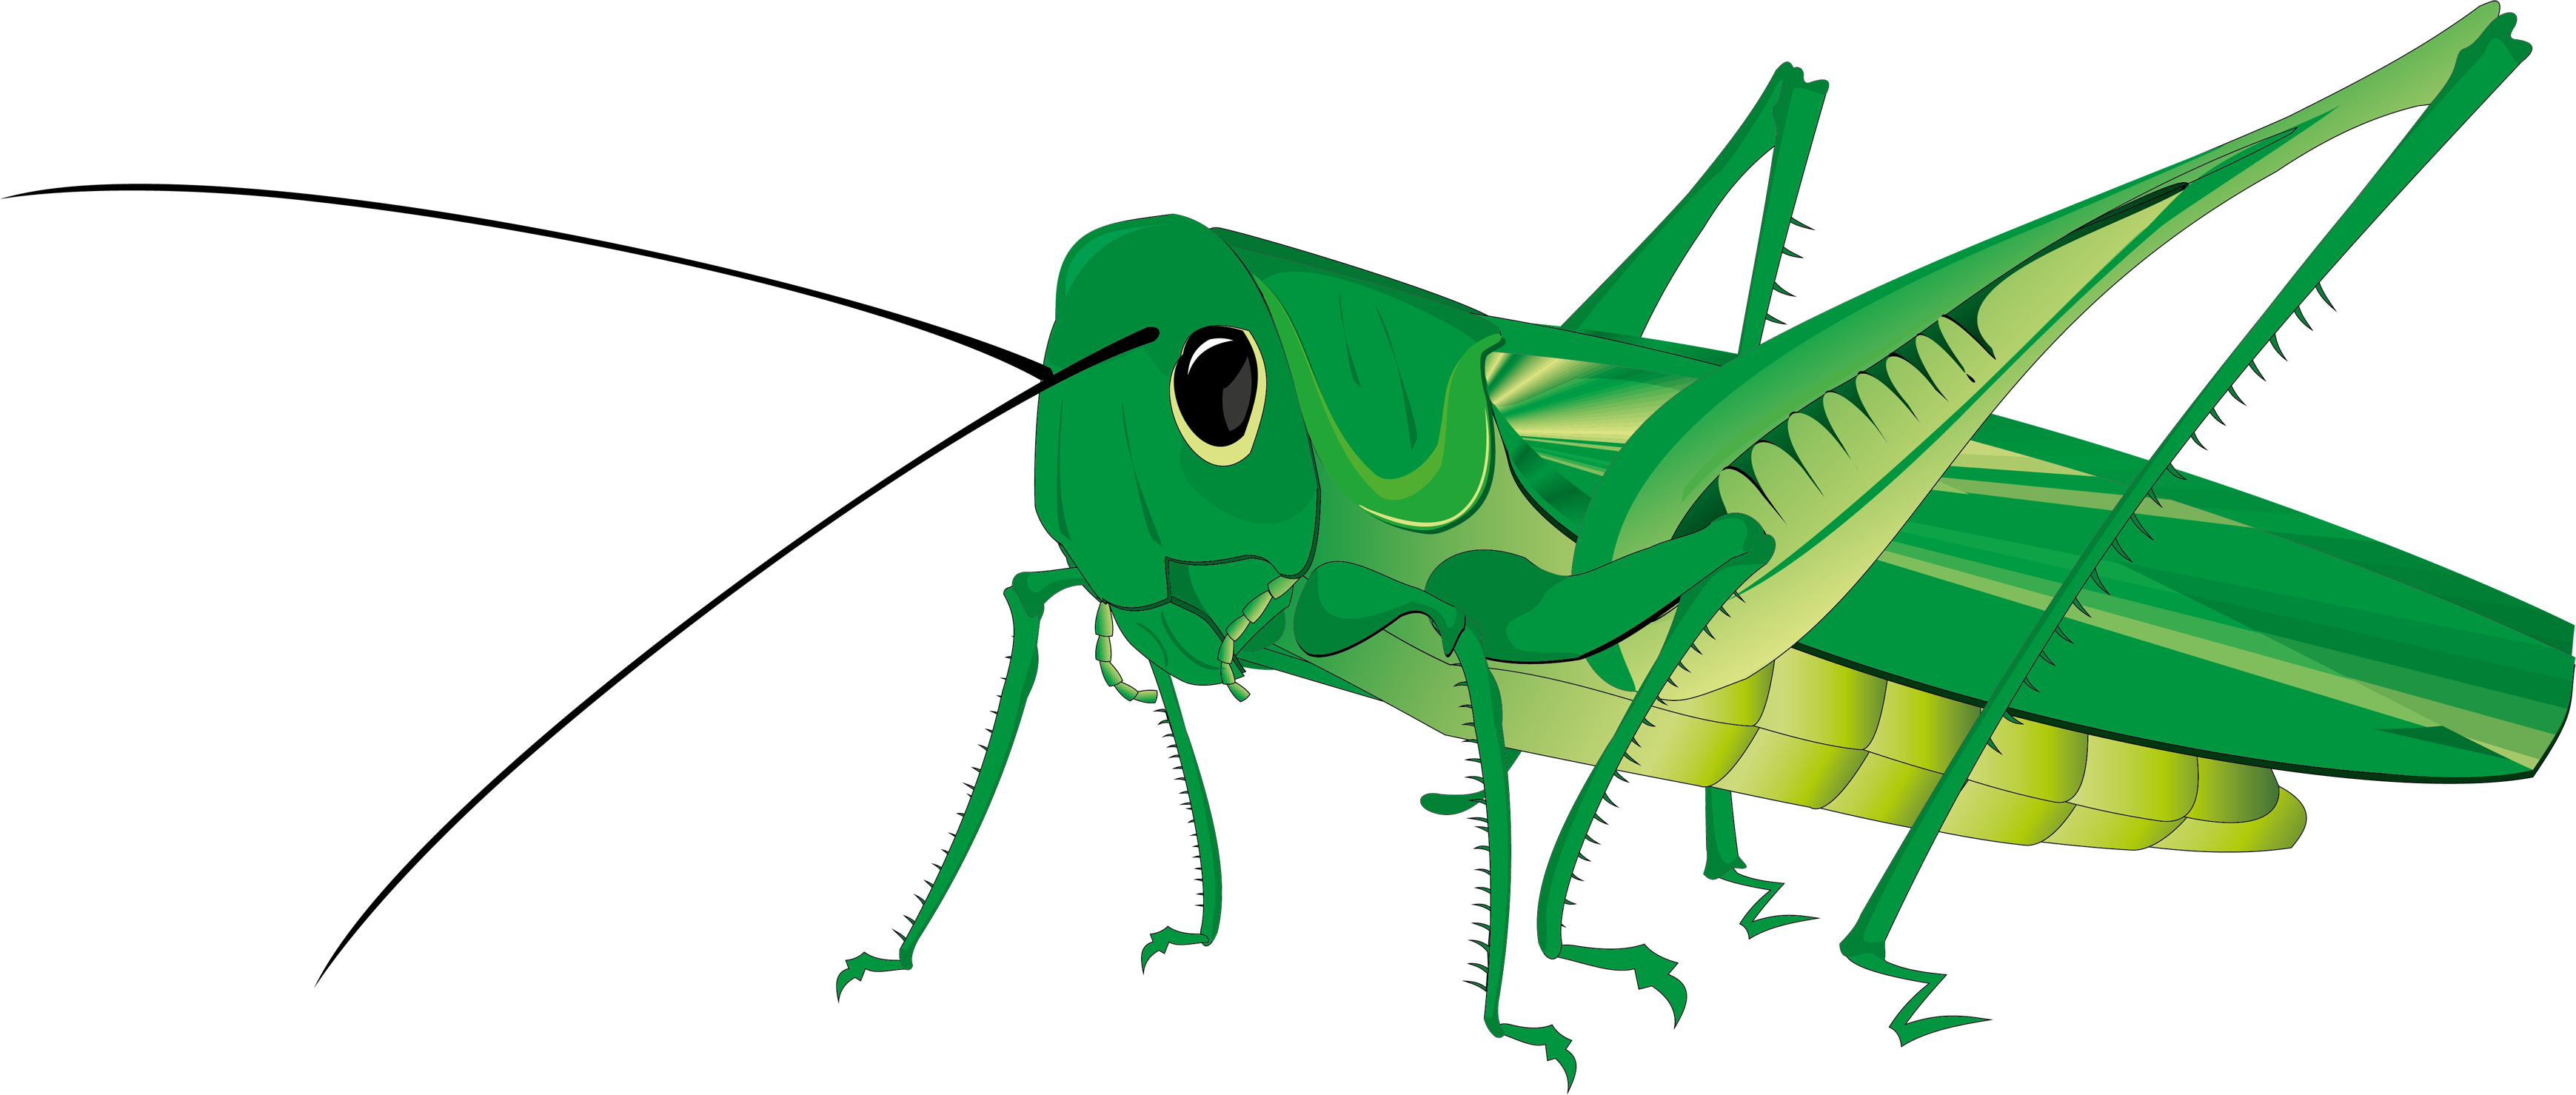 Insect legs png. Grasshopper